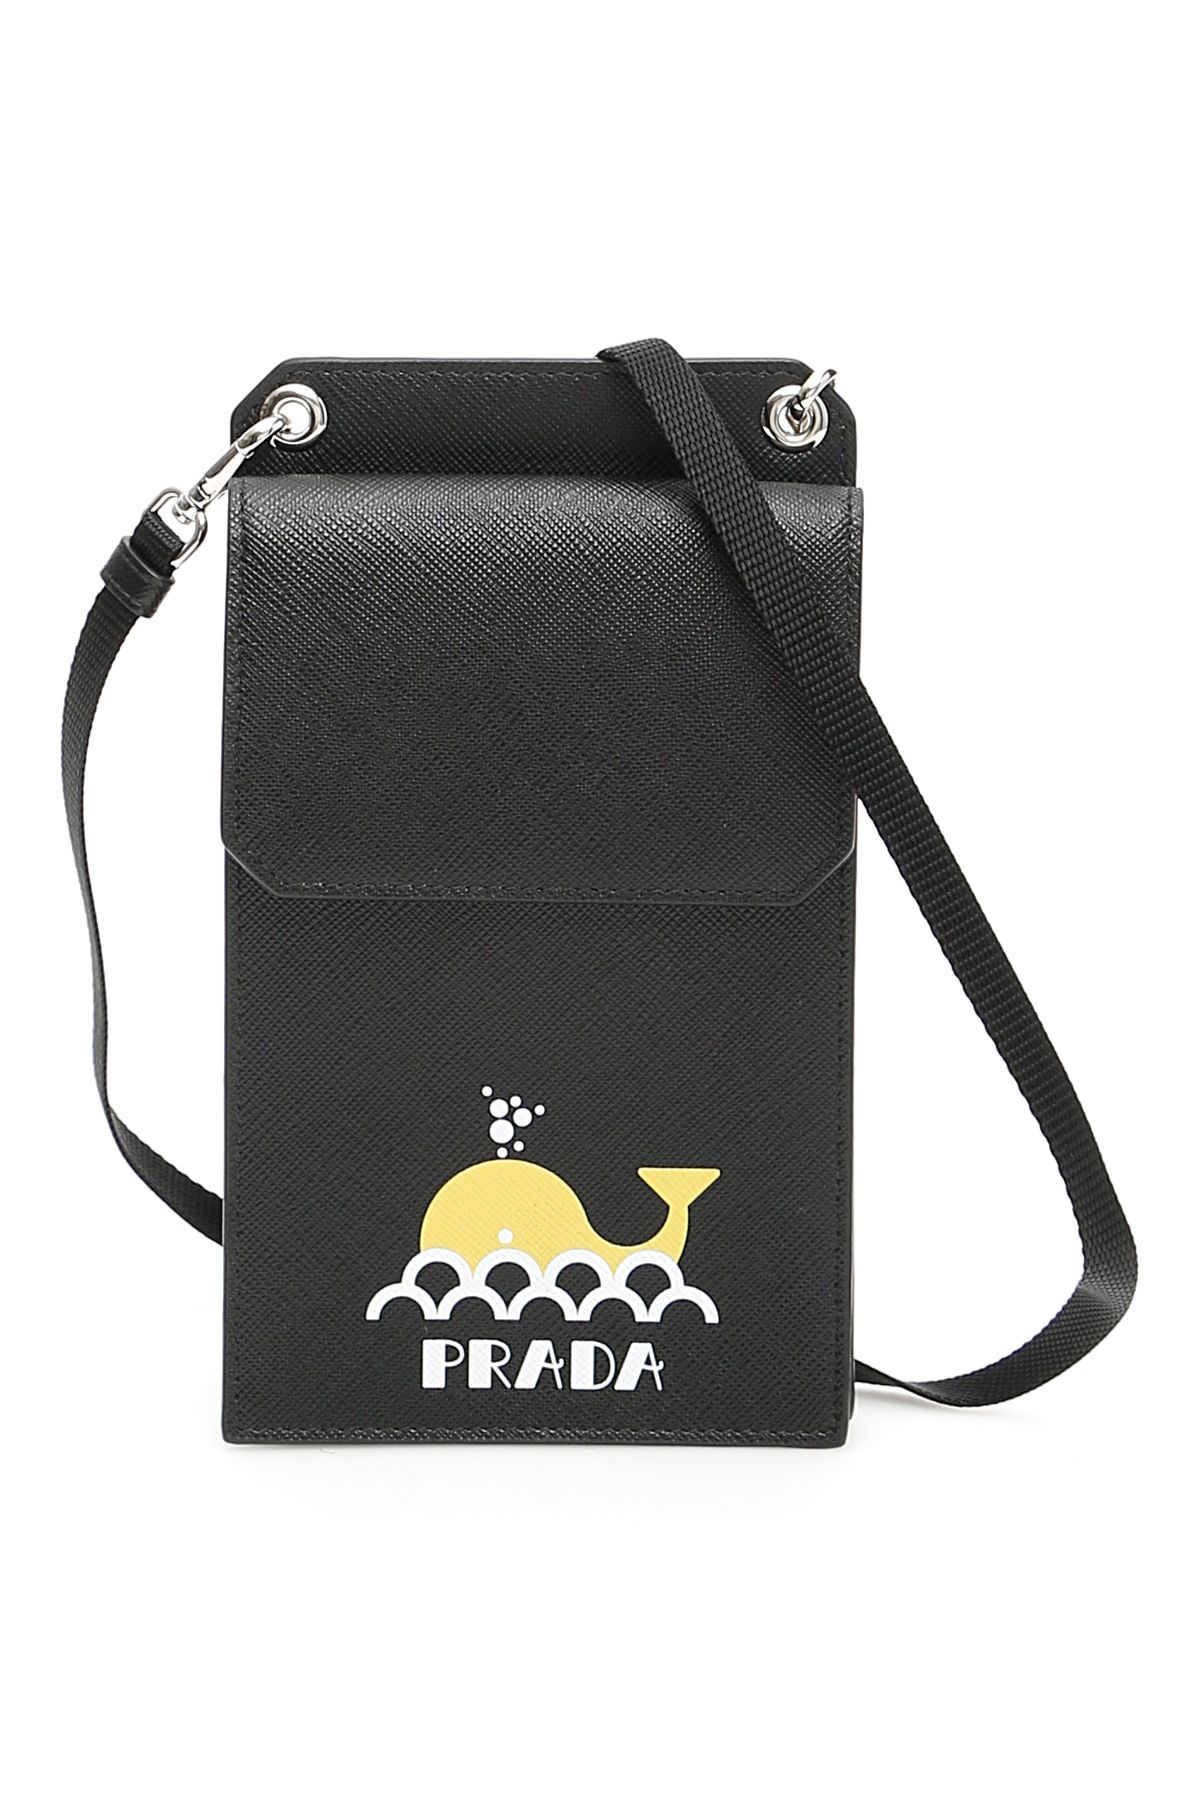 976cf1c162e325 Prada Prada Saffiano Iphone Case - NERO GIALLO (Black) - 10800244 ...